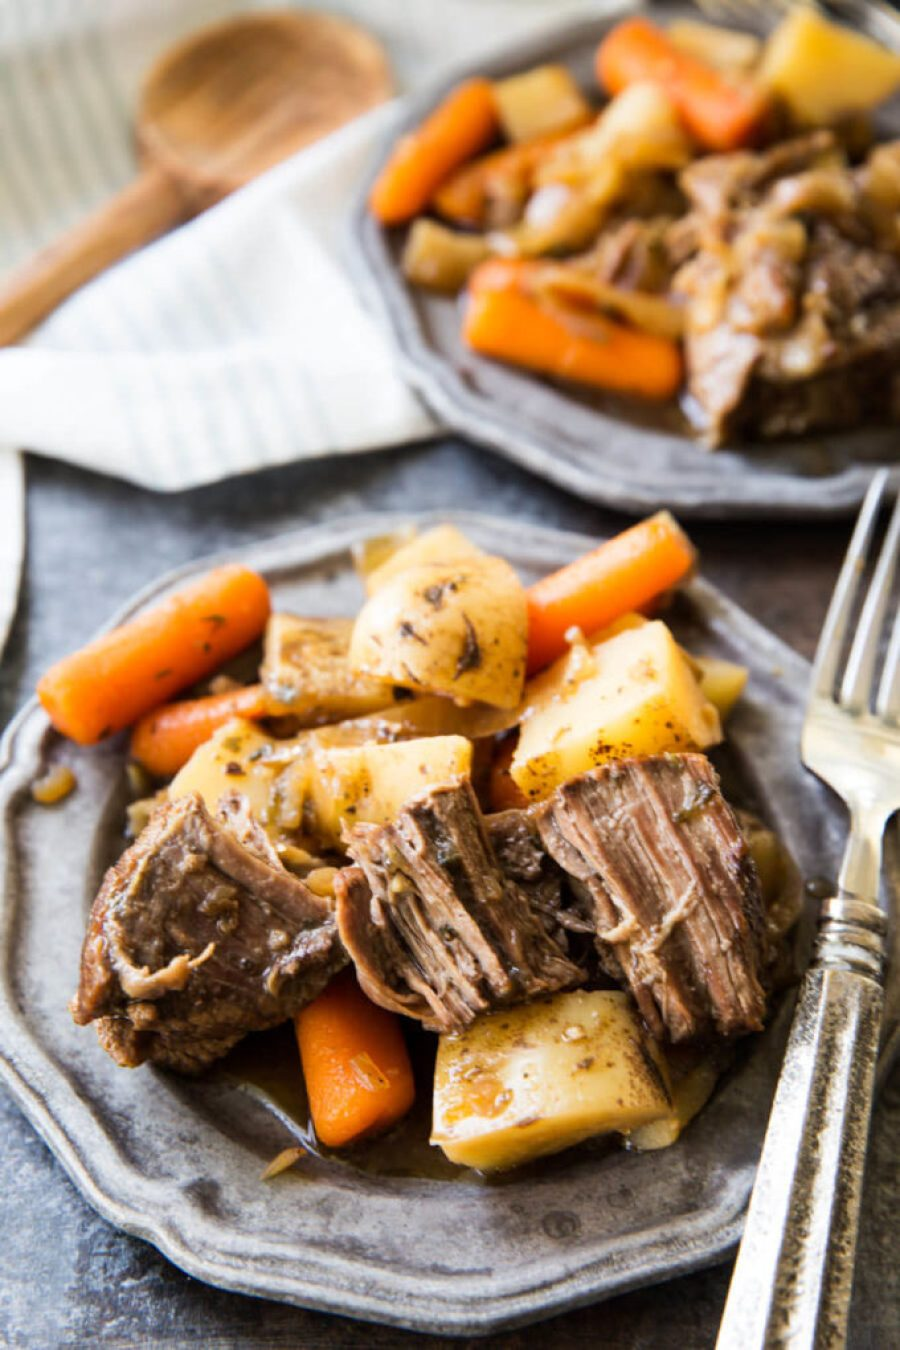 Crock pot chuck roast with potatoes and carrots 2 silver plates with a fork over one plate